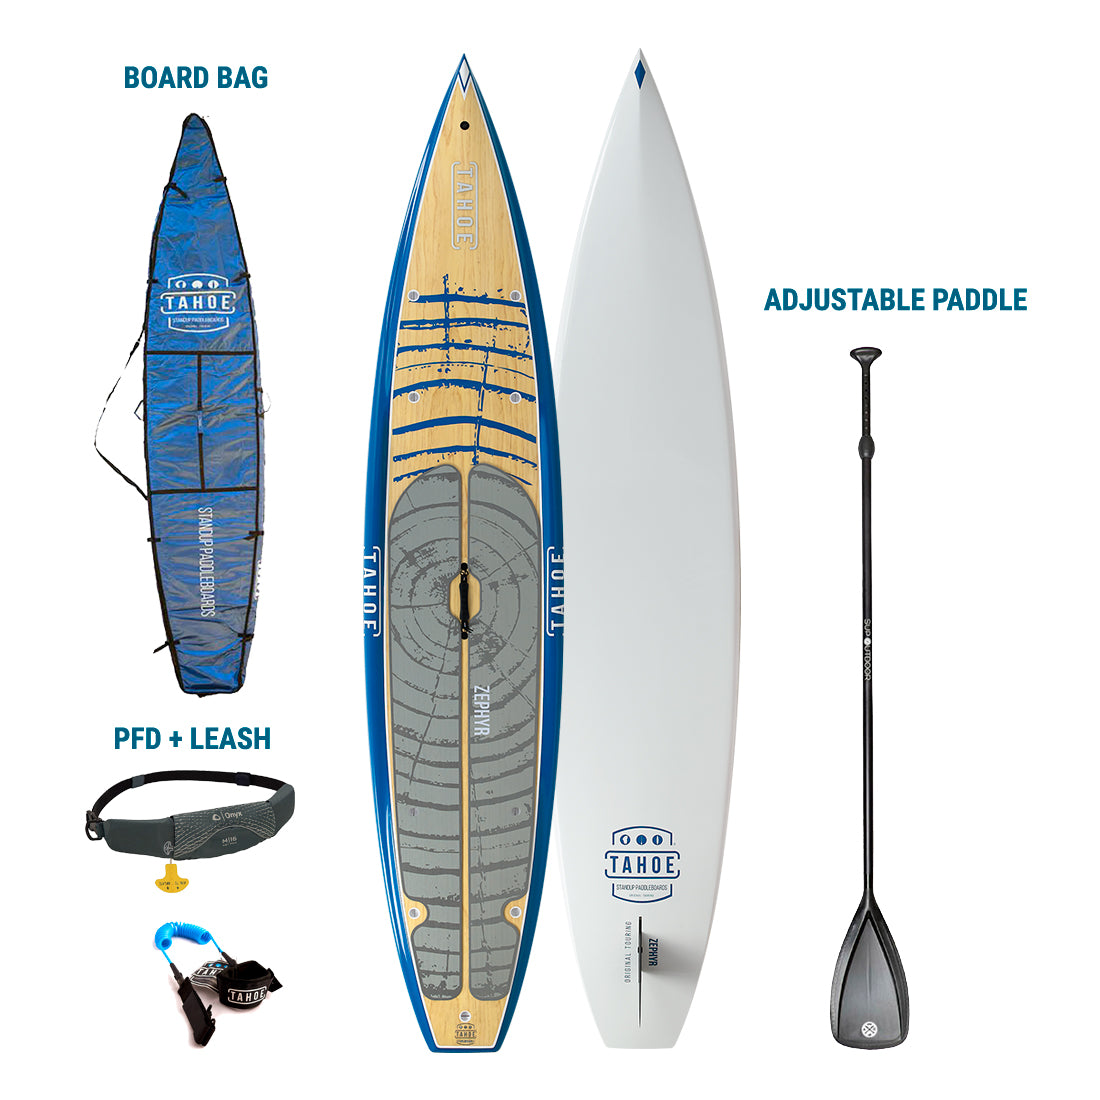 TRUCKEE/AUBURN RENTAL: Tahoe SUP Zephyr Premium Stand Up Paddleboard + Board Bag + Paddle + Leash/PFD Rental 4theoutdoors America US USA SUP outdoors